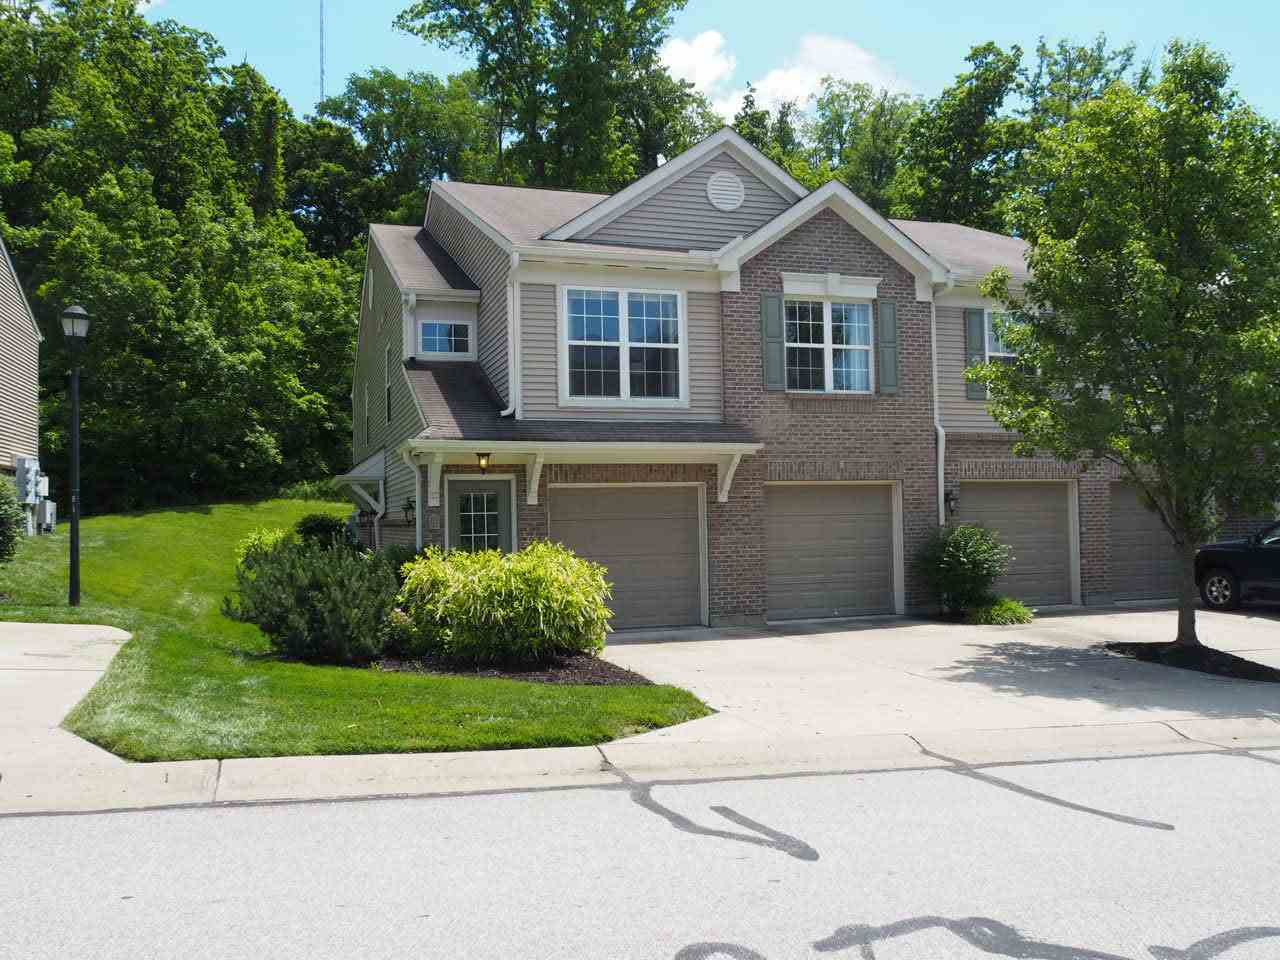 Photo 1 for 569 Rivers Breeze Dr Ludlow, KY 41016